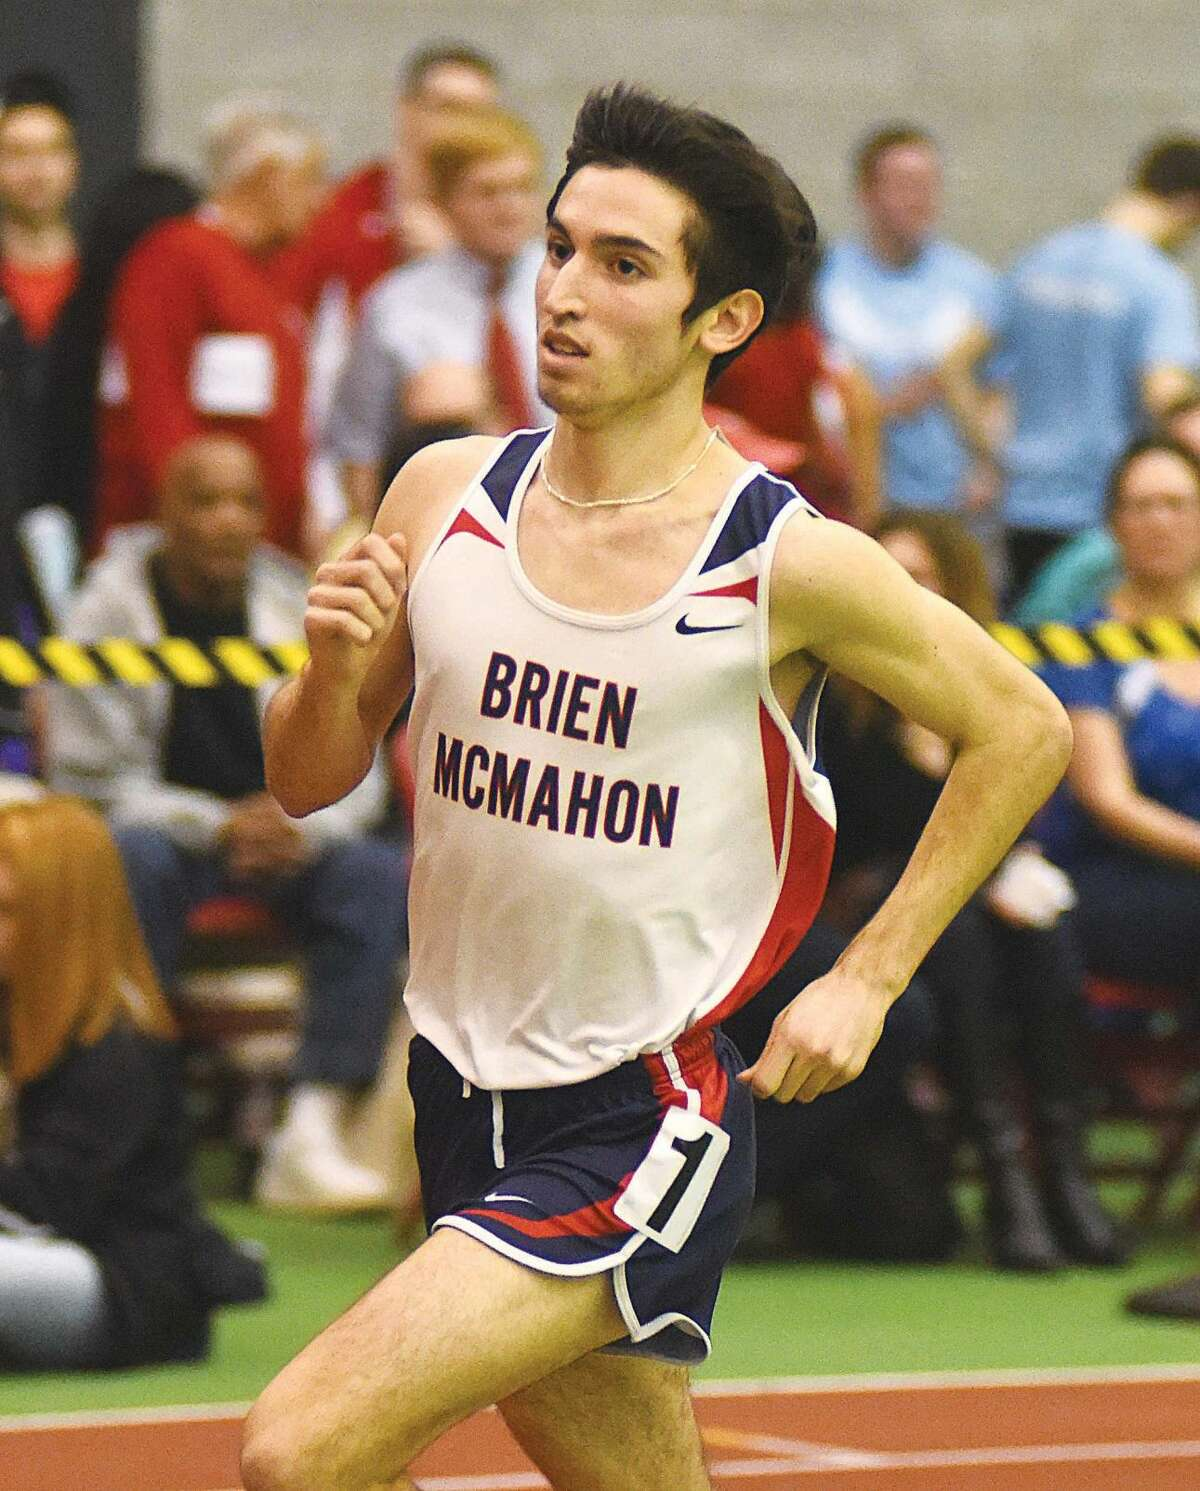 Hour photo/John Nash - Brien McMahon's Eric van der Els races during the boys 1,600 meter run during Thursday's FCIAC indoor track championship meet at the Floyd Little Athletic Center in New Haven.